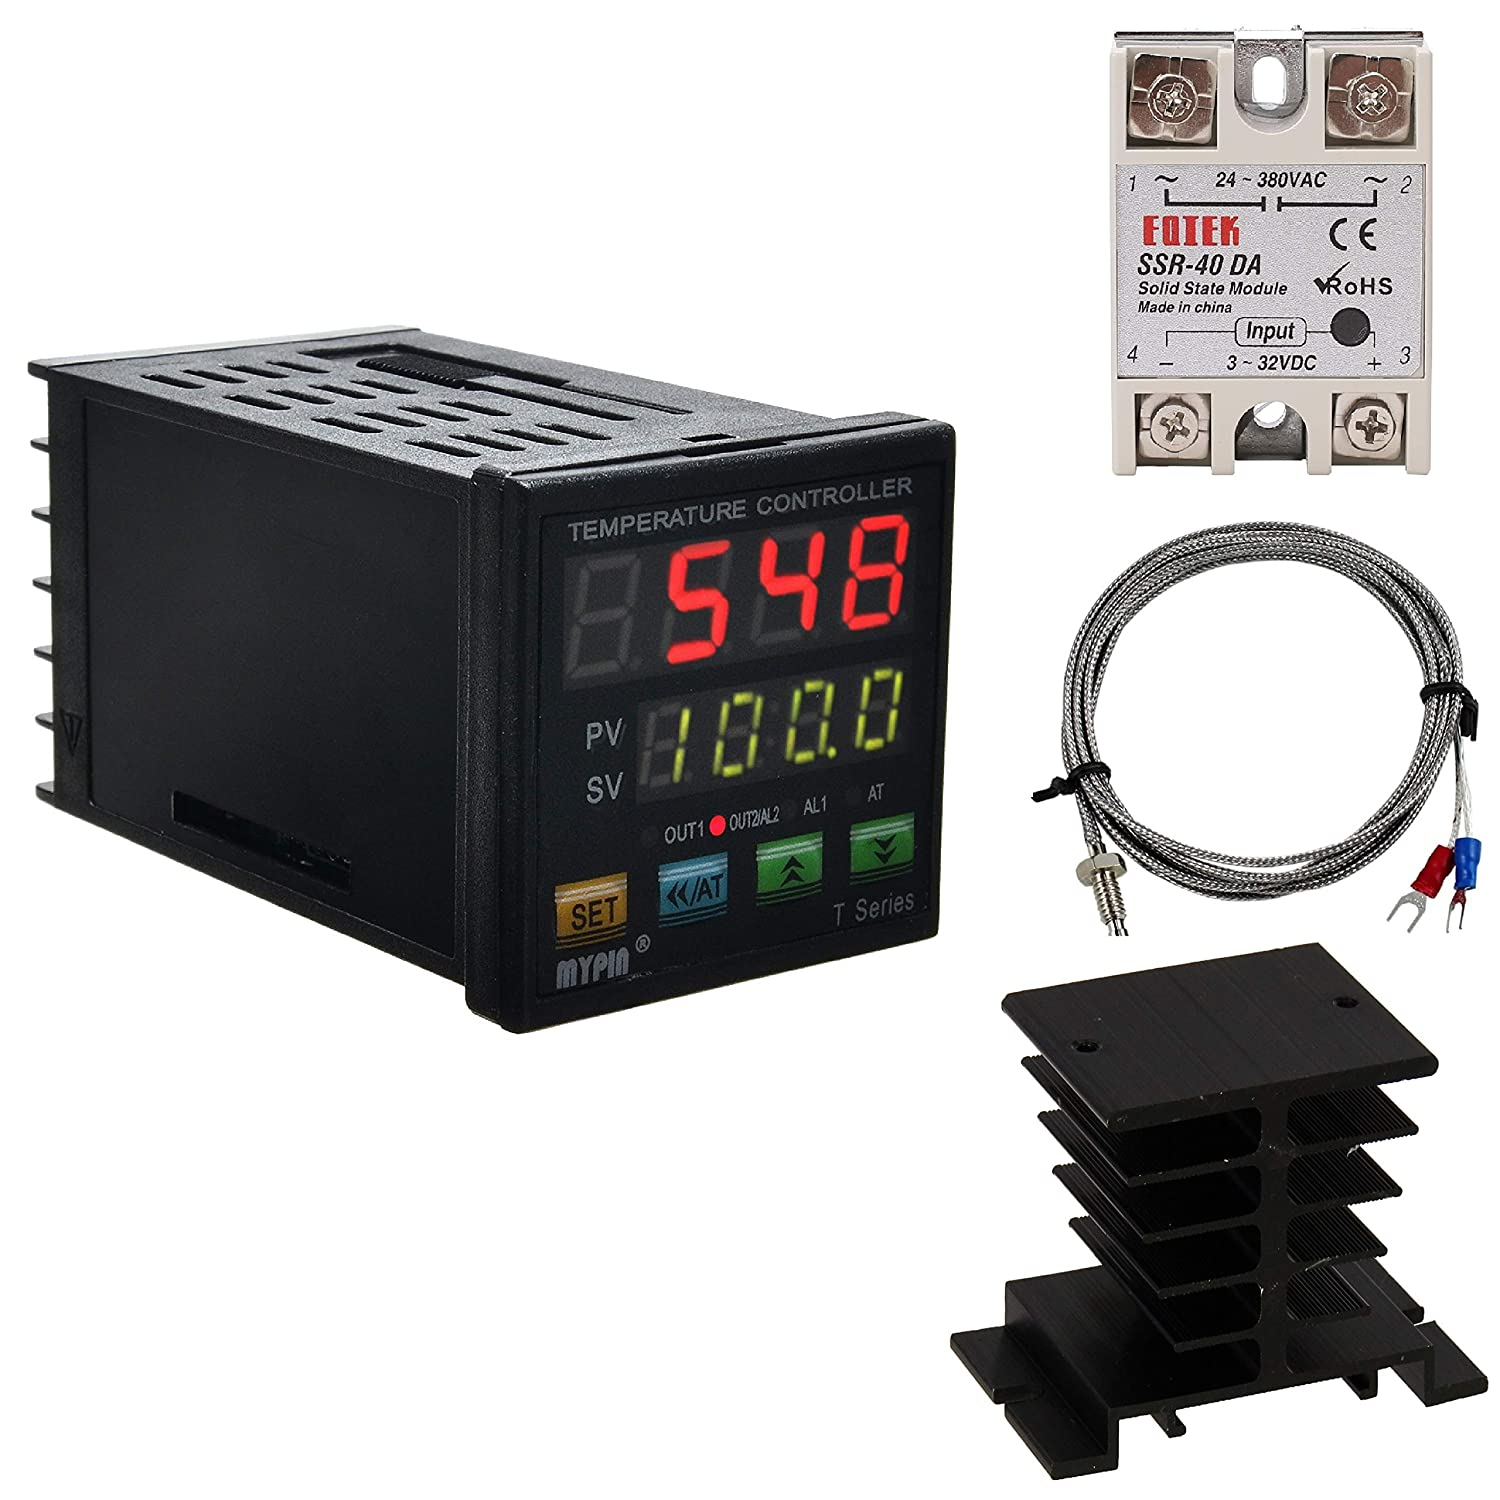 PID Temperature Controller Meter Indicator, Jaybva Digital Universal Thermostat C and Fahrenhe F Display SSR and Alarm Output 40A Solid State Relay and Thermocouple Probe Heat Sink Included